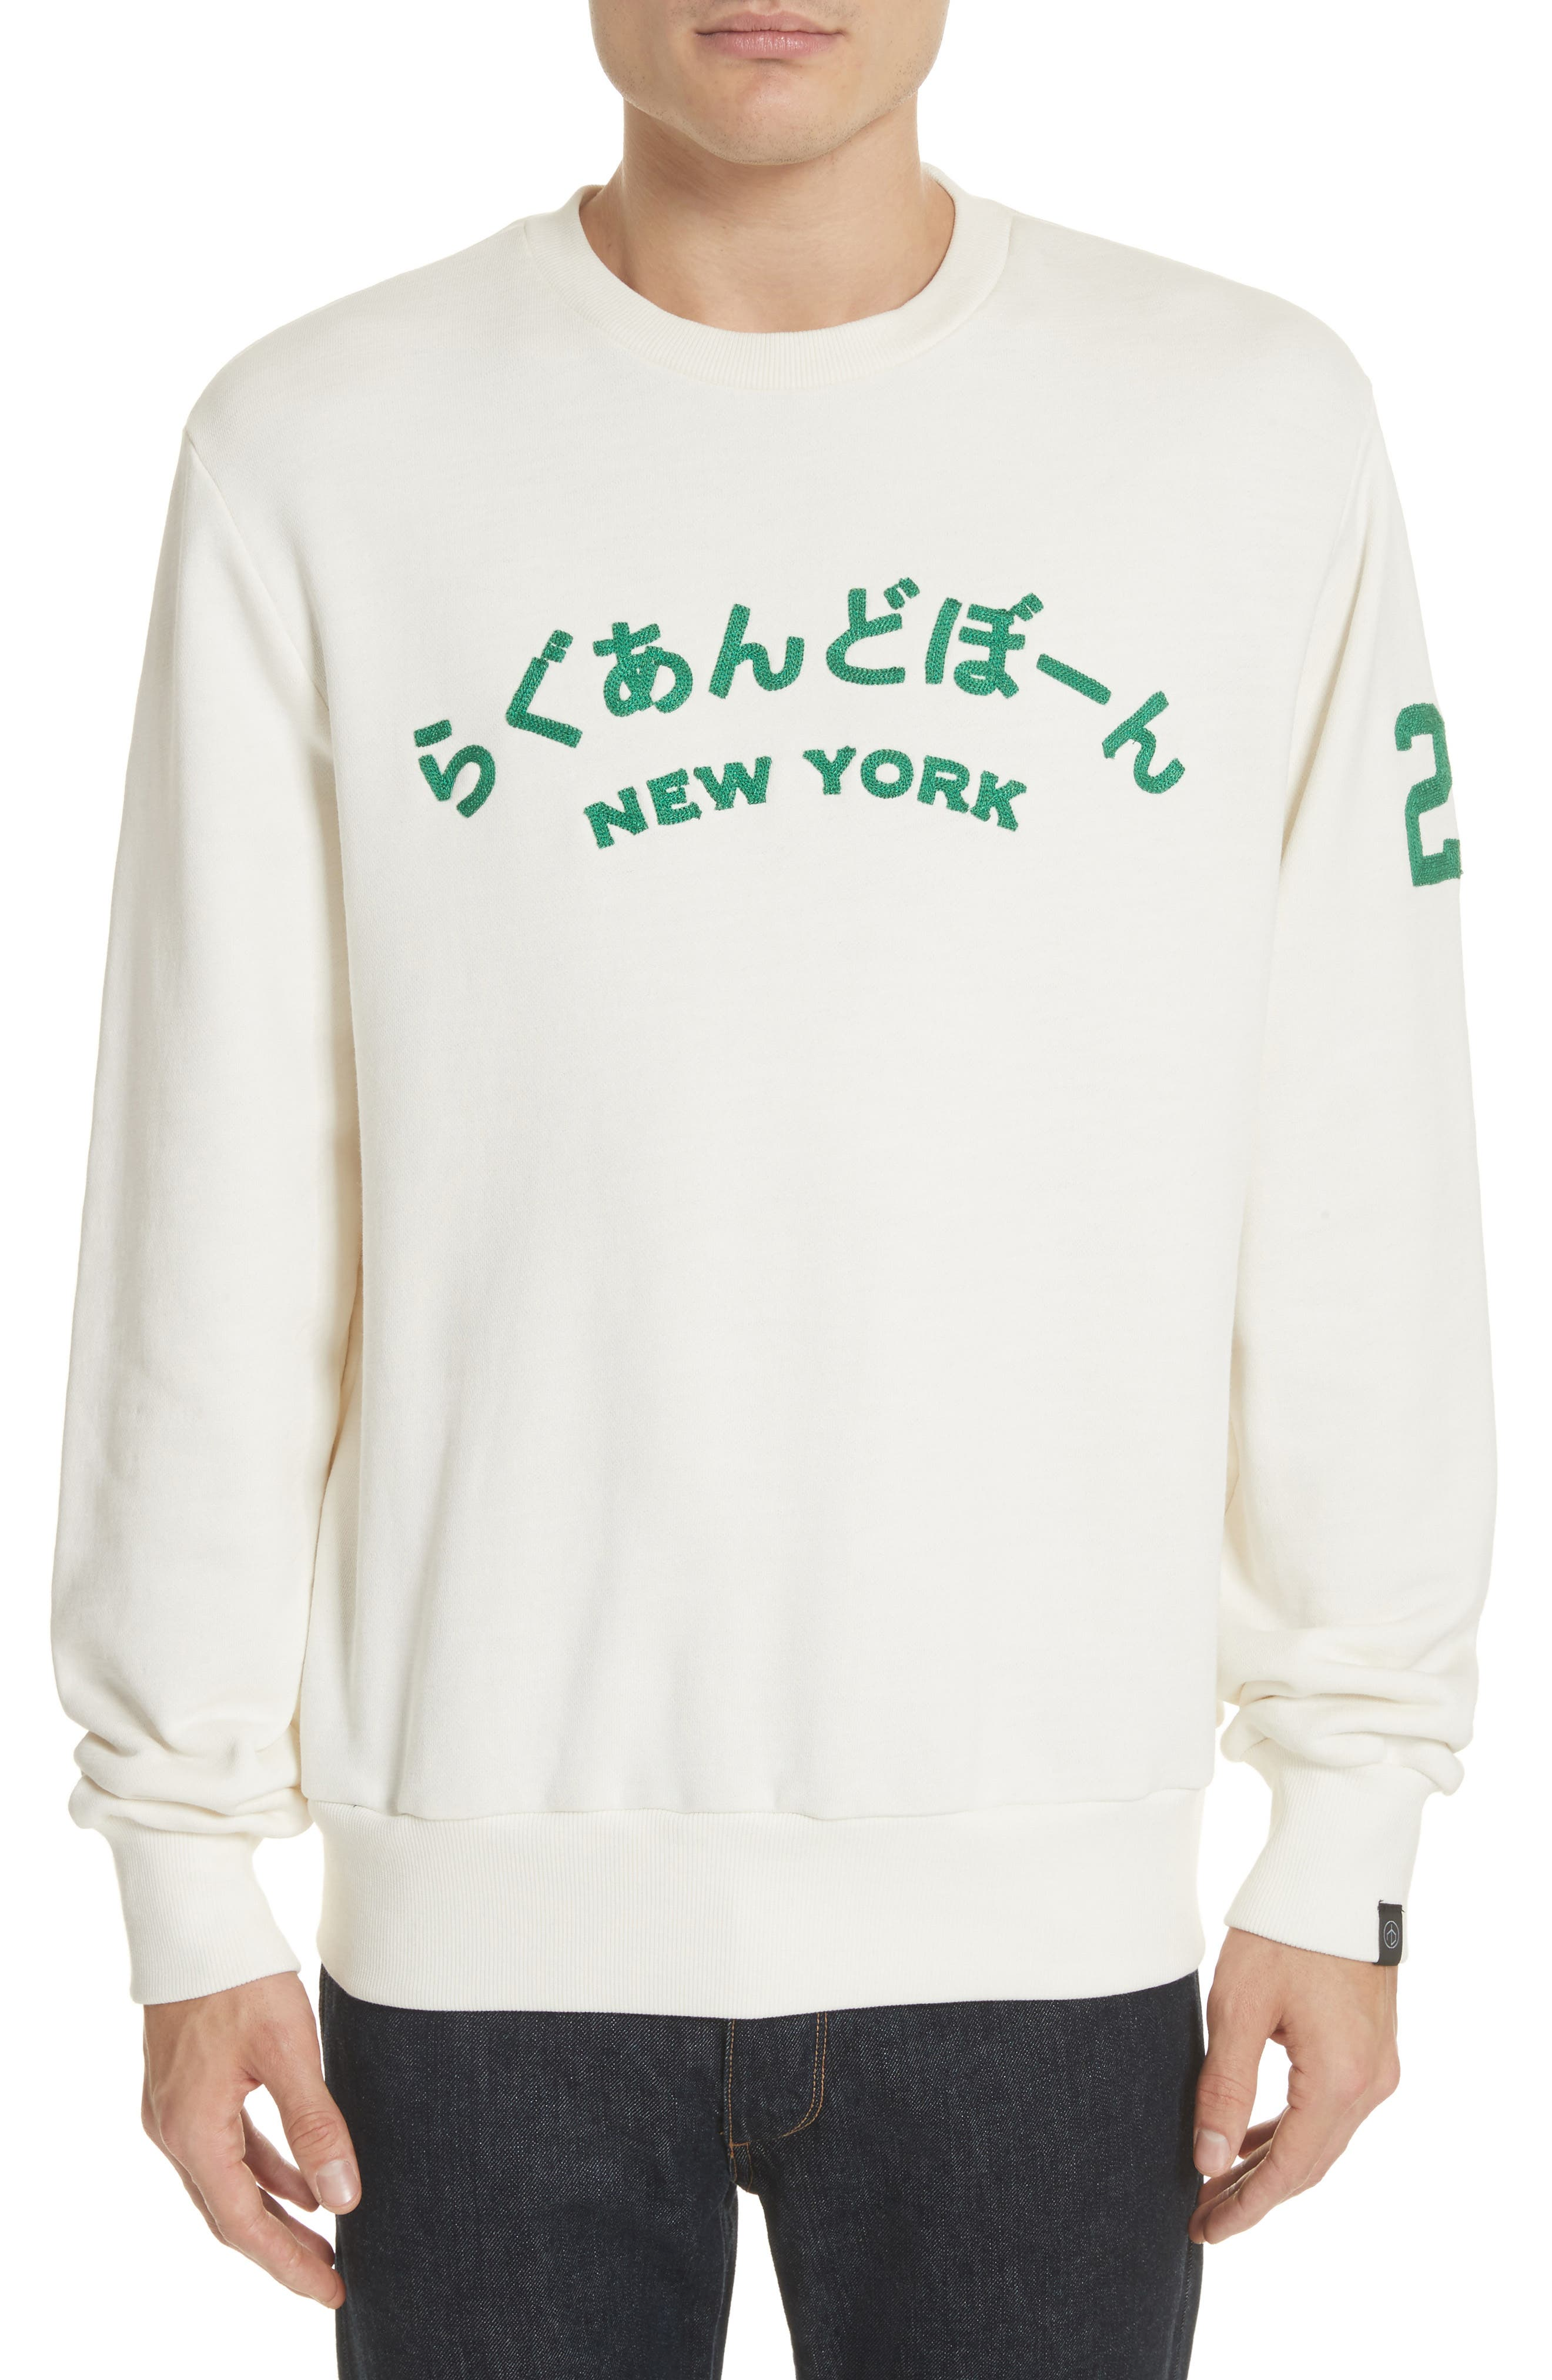 Japan Embroidered Crewneck Sweatshirt,                         Main,                         color, Ivory